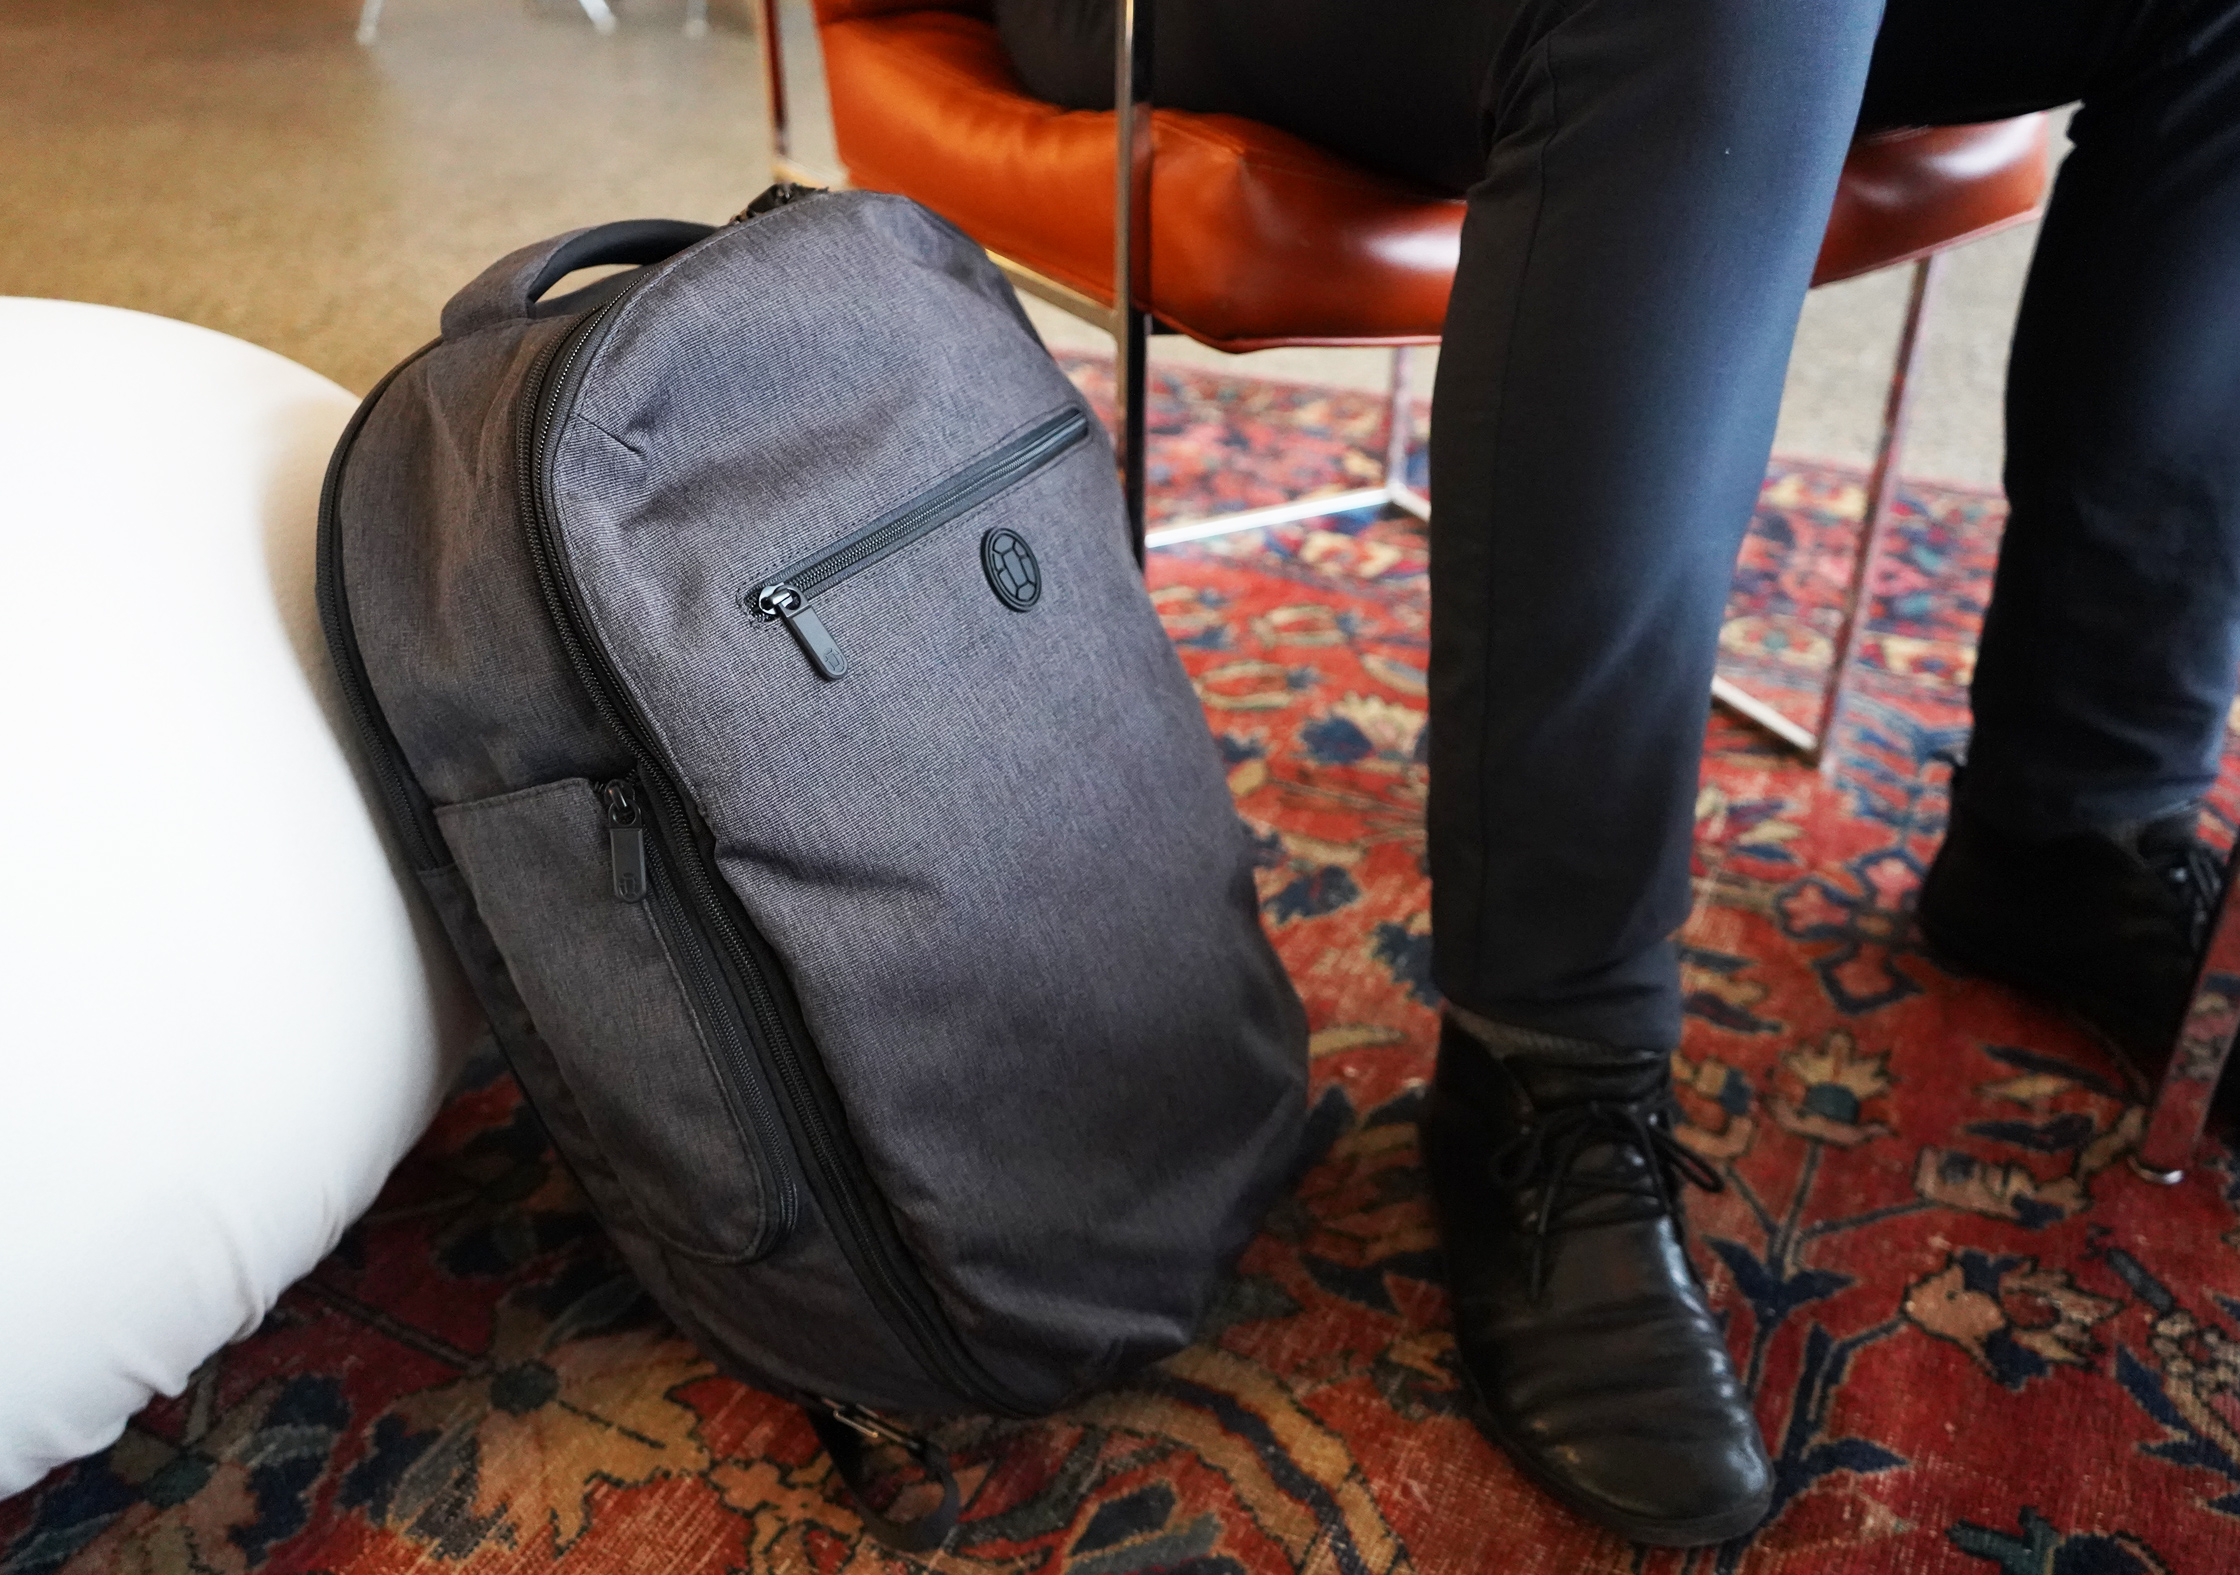 Tortuga Setout Laptop Backpack At Coffee Shop